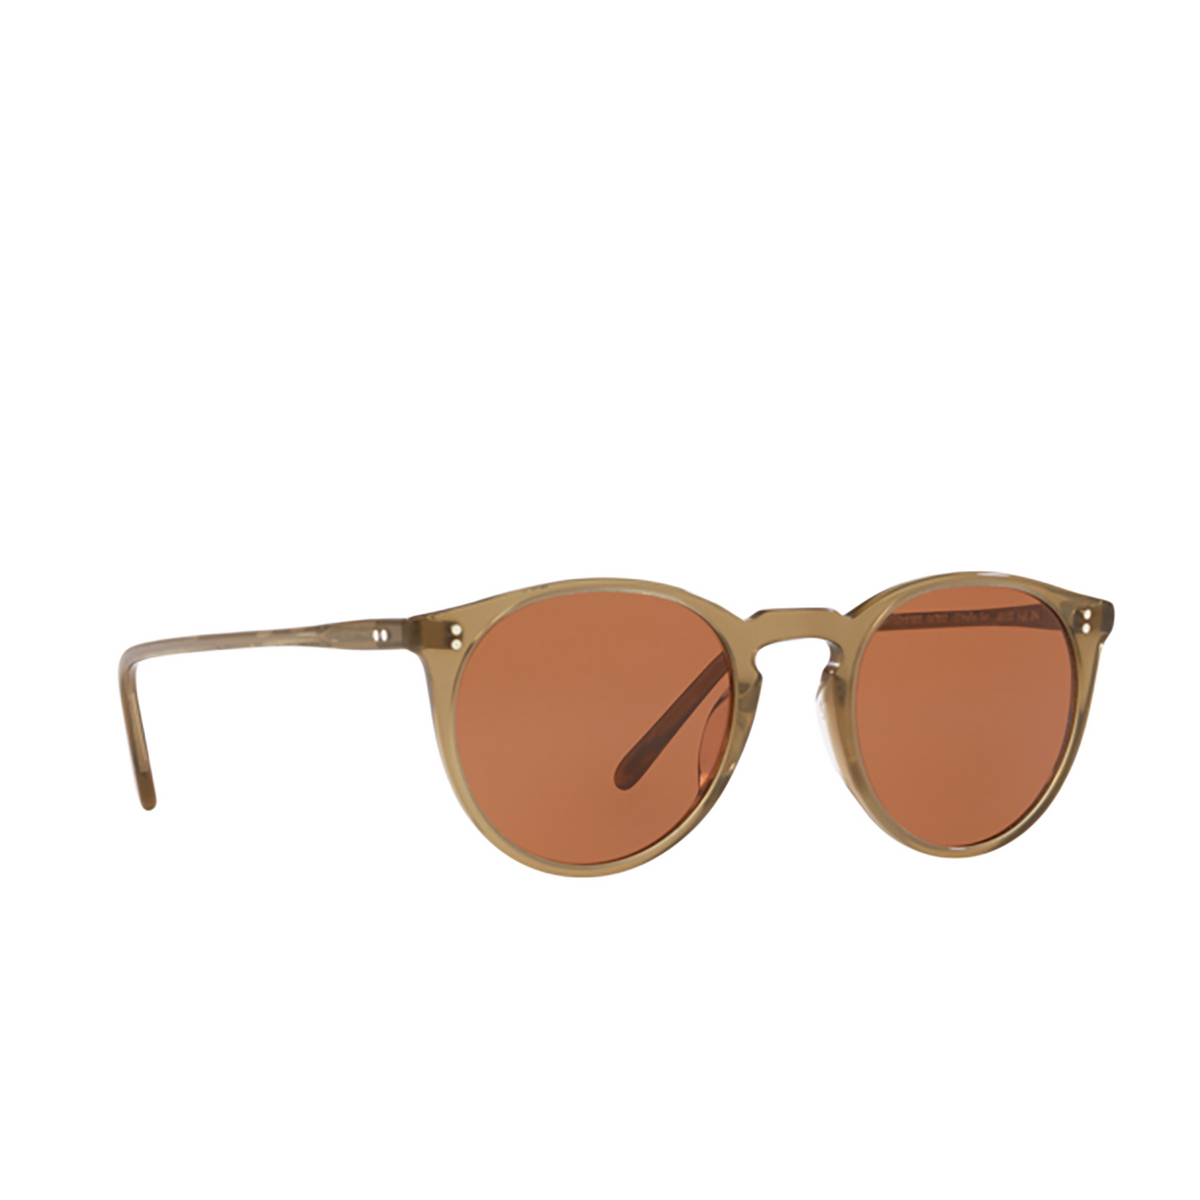 Oliver Peoples® : O'malley Sun OV5183S color Dusty Olive 167853.